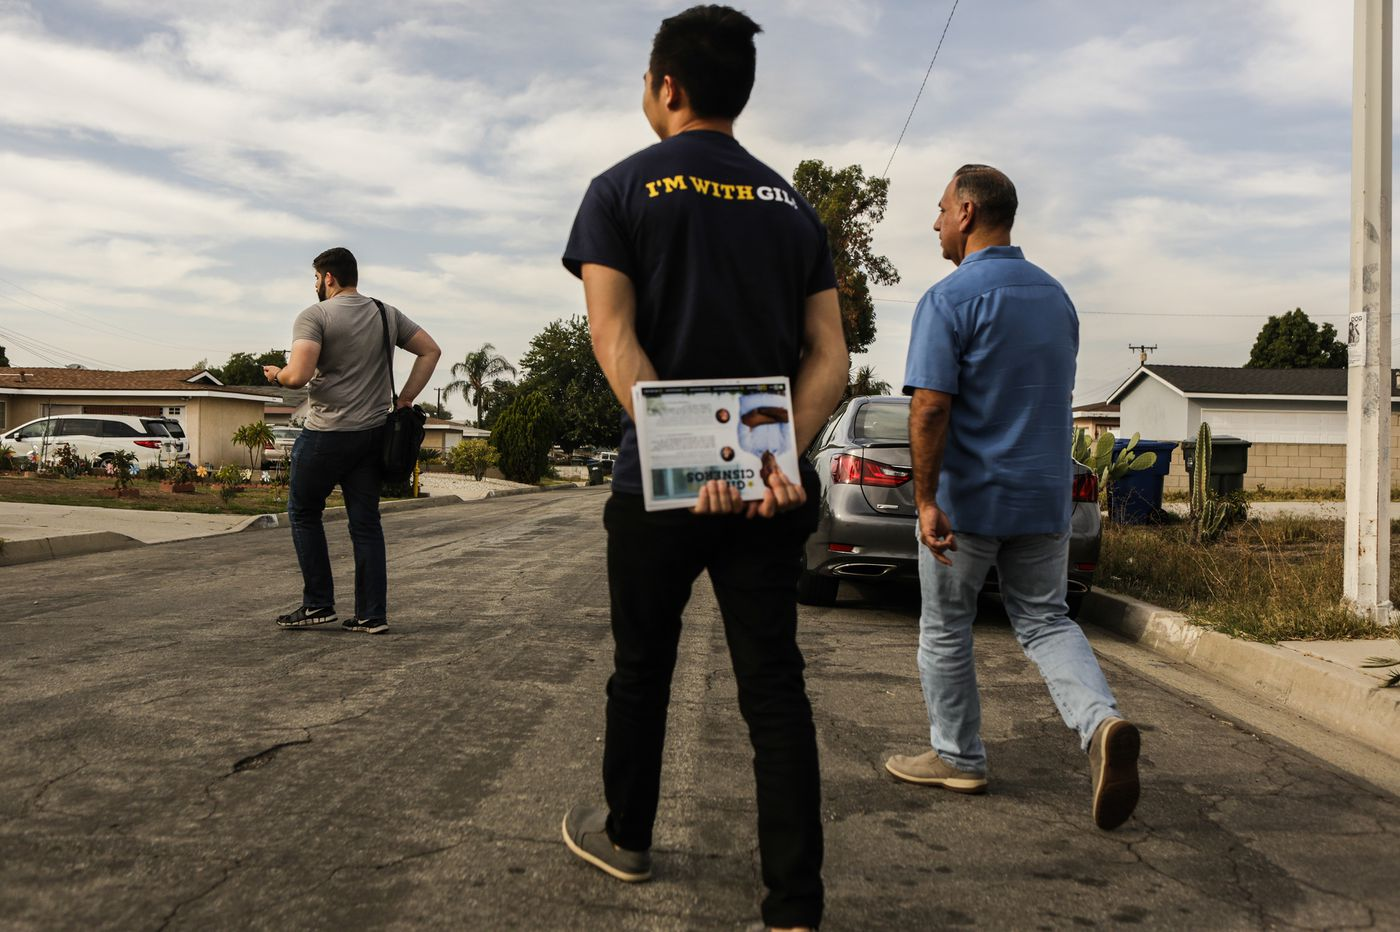 Asian Americans represent untapped voting power in the U.S. | Opinion